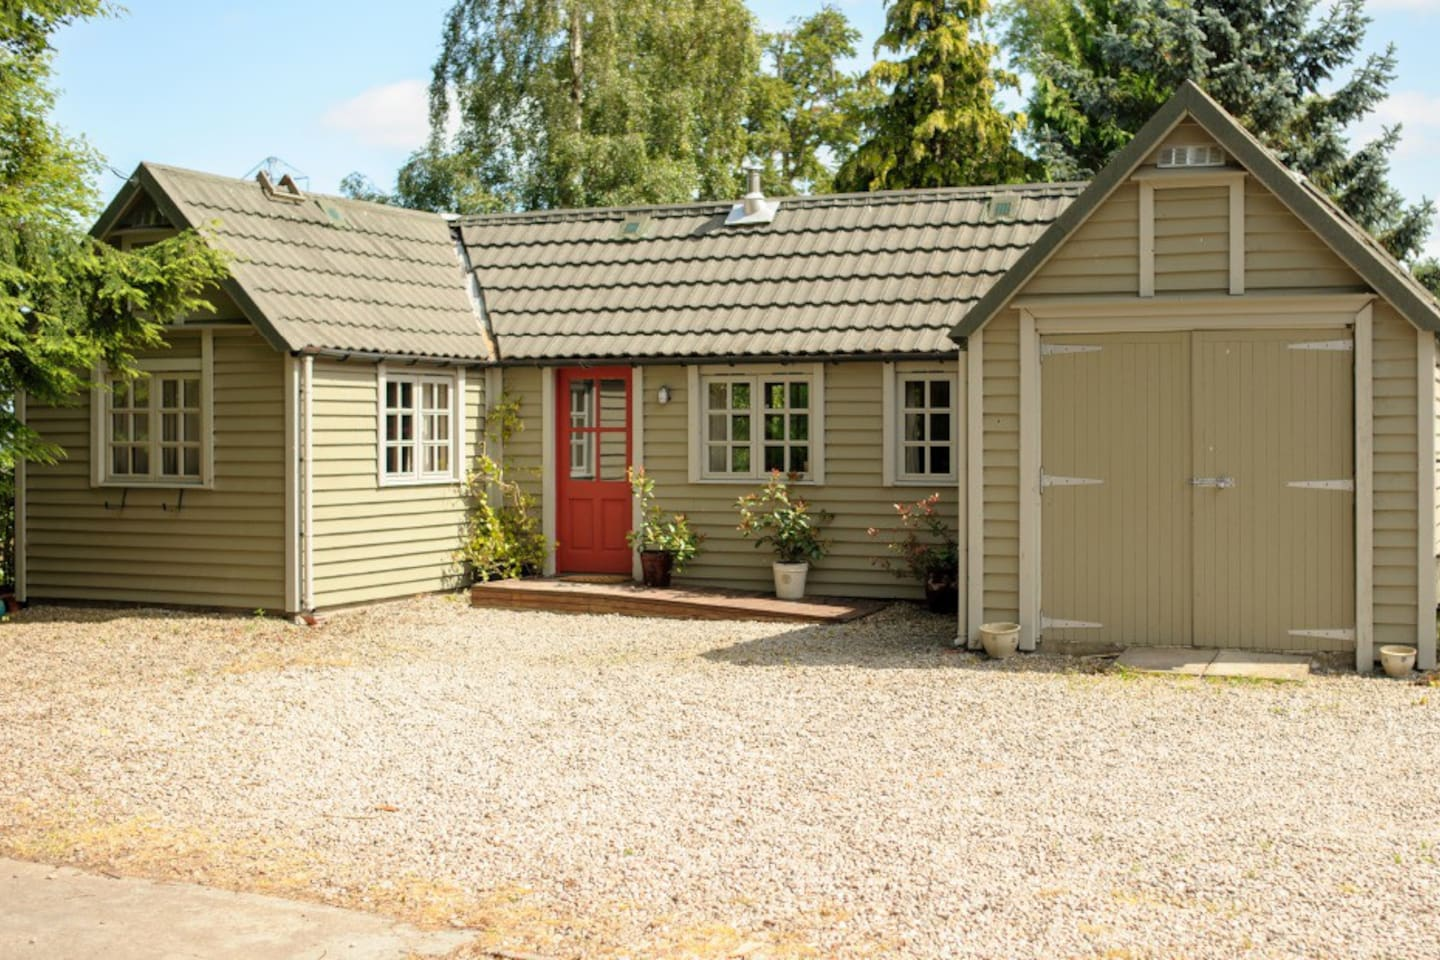 A lovely cottage set in a quite rural location in the Highlands, with distant views of the Beauly Firth & Mountains